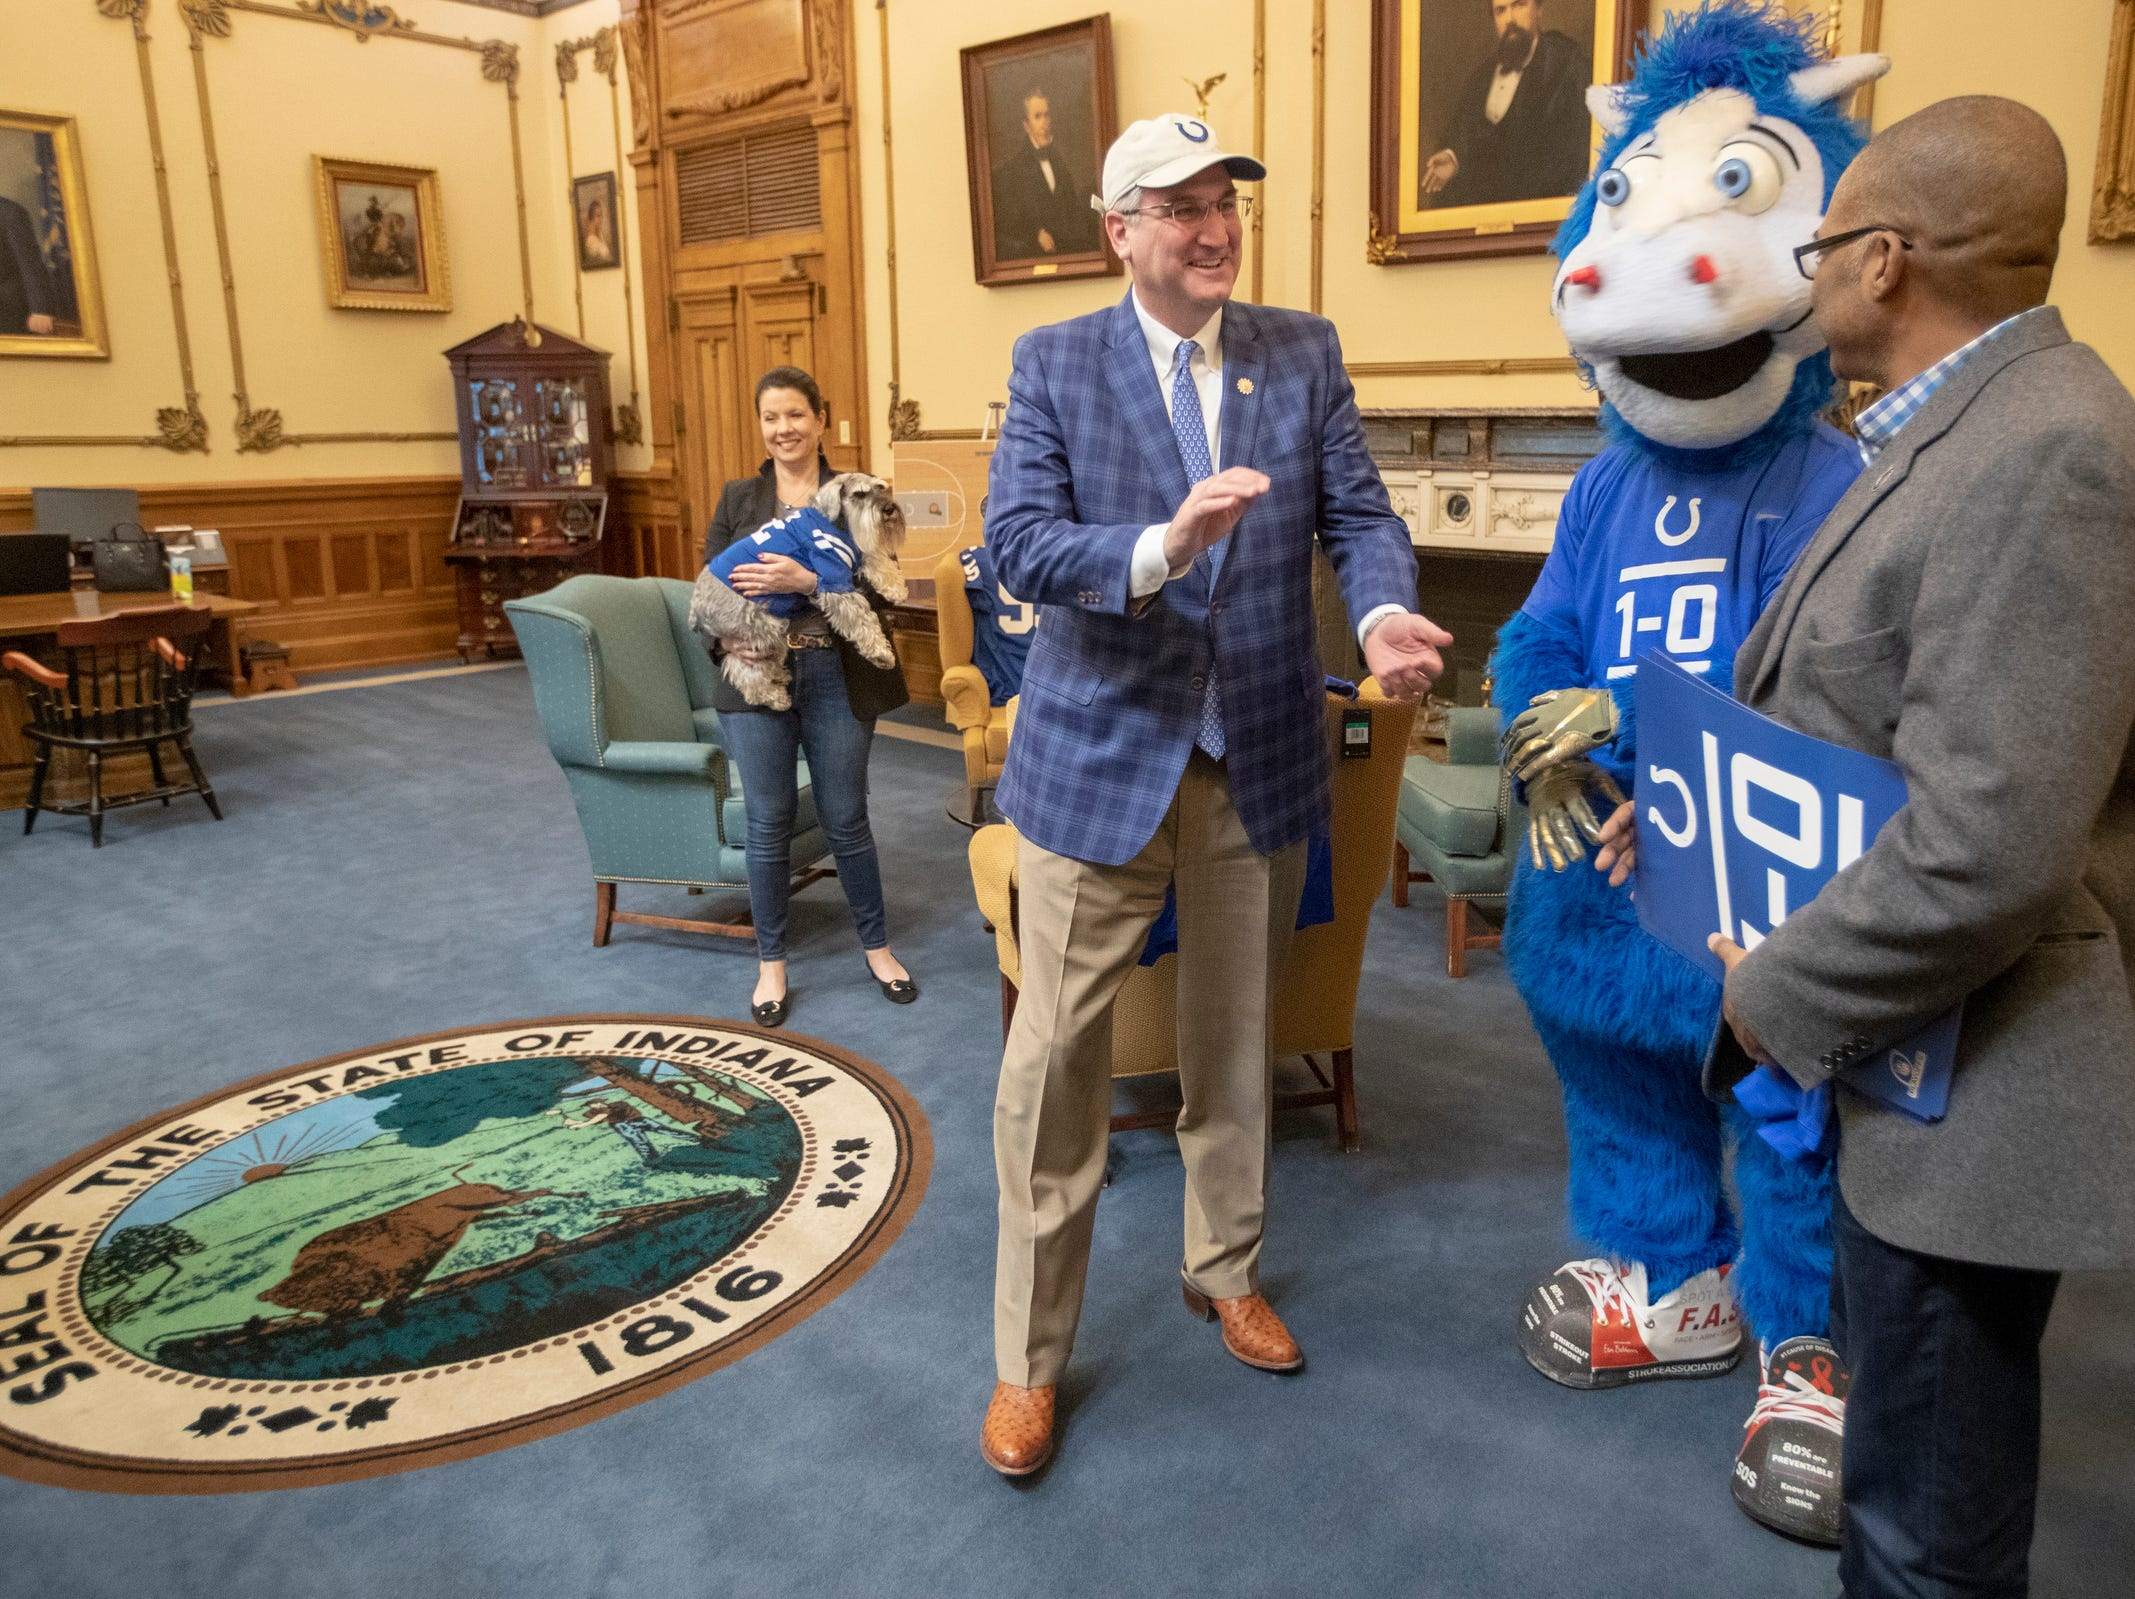 Janet Holcomb and Eric Holcomb, visit with mascot Blue and Colts VP of Communications Steve Campbell, at Holcomb's office in the Indiana Statehouse, Indianapolis, Wednesday, January 3, 2019. The Colts have a Wild Card game this coming weekend against the Texans.